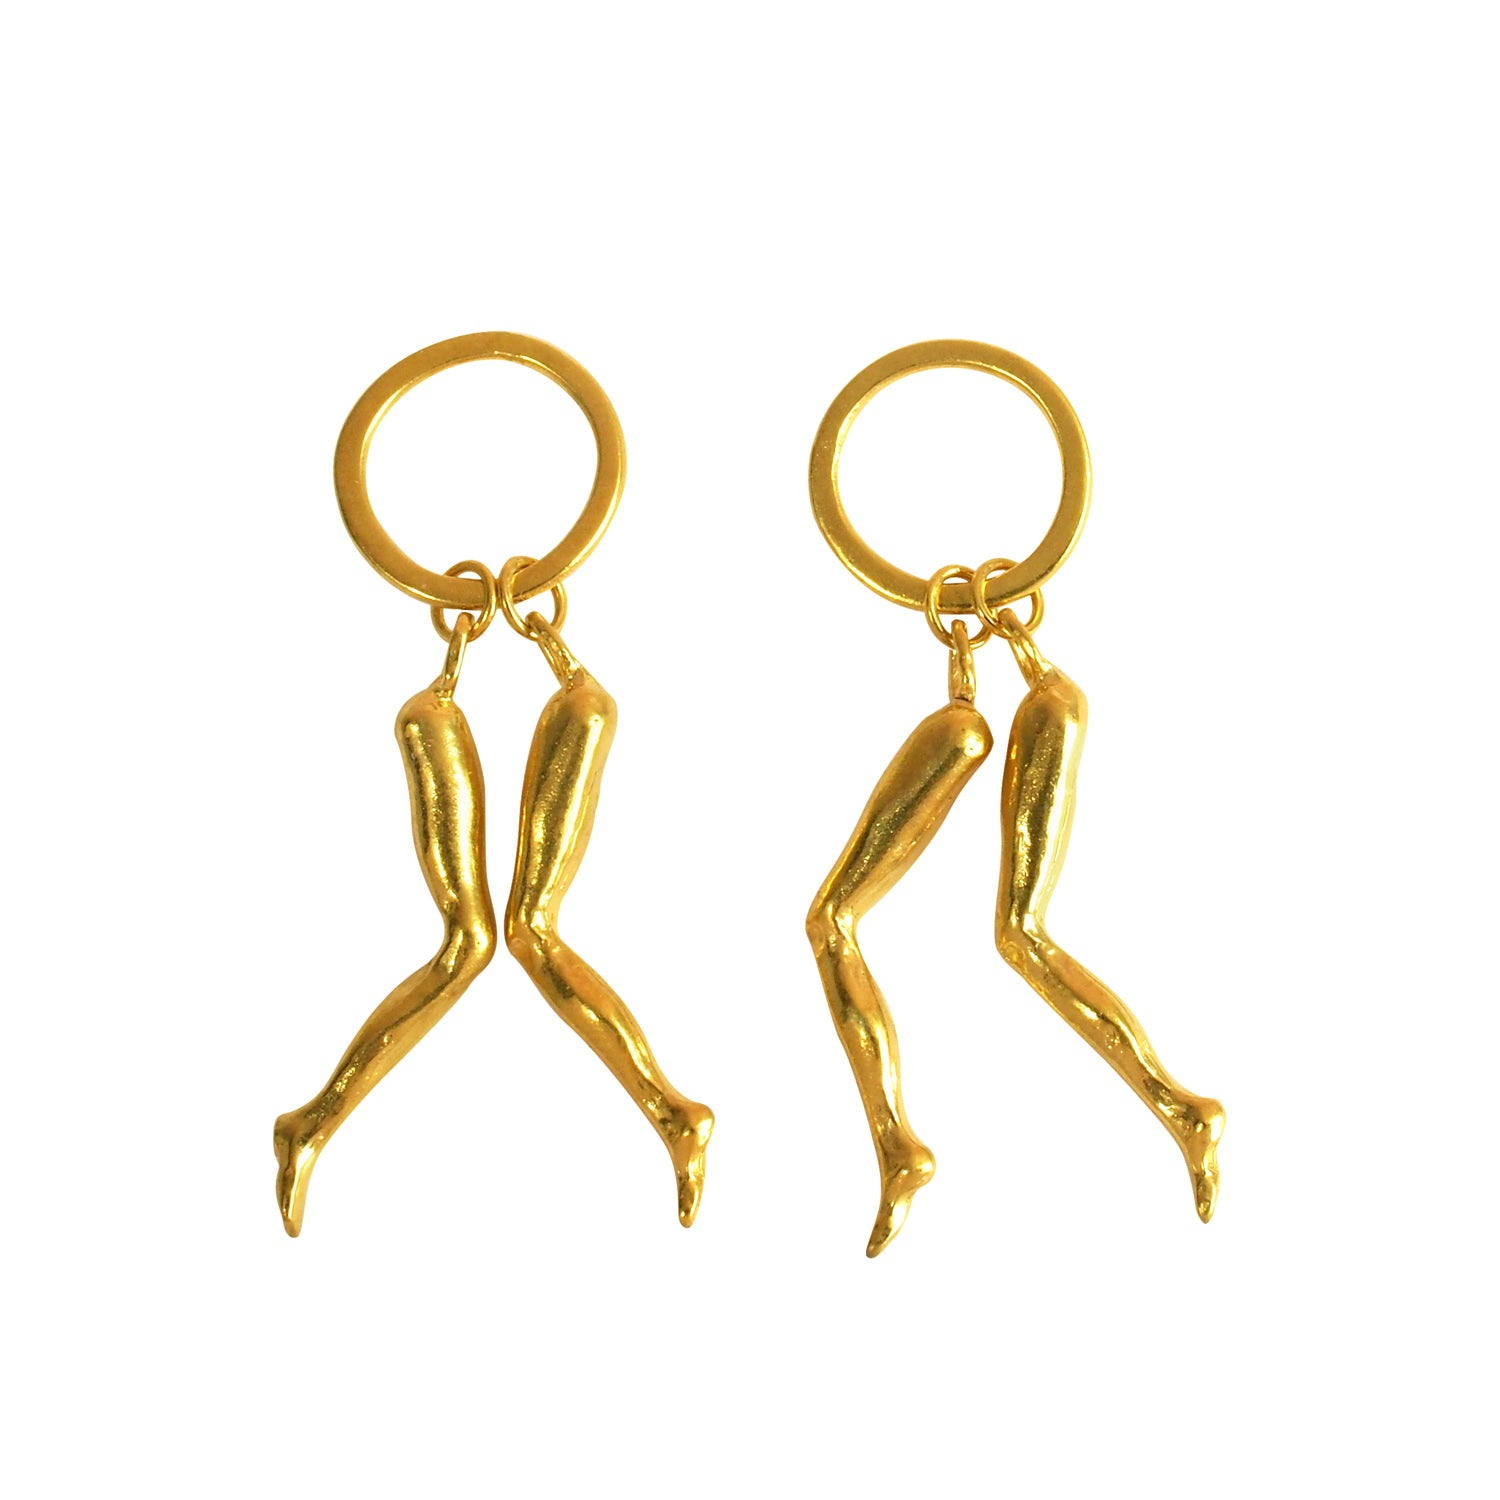 Jack Rabbit Slim's Twist Gold Earrings